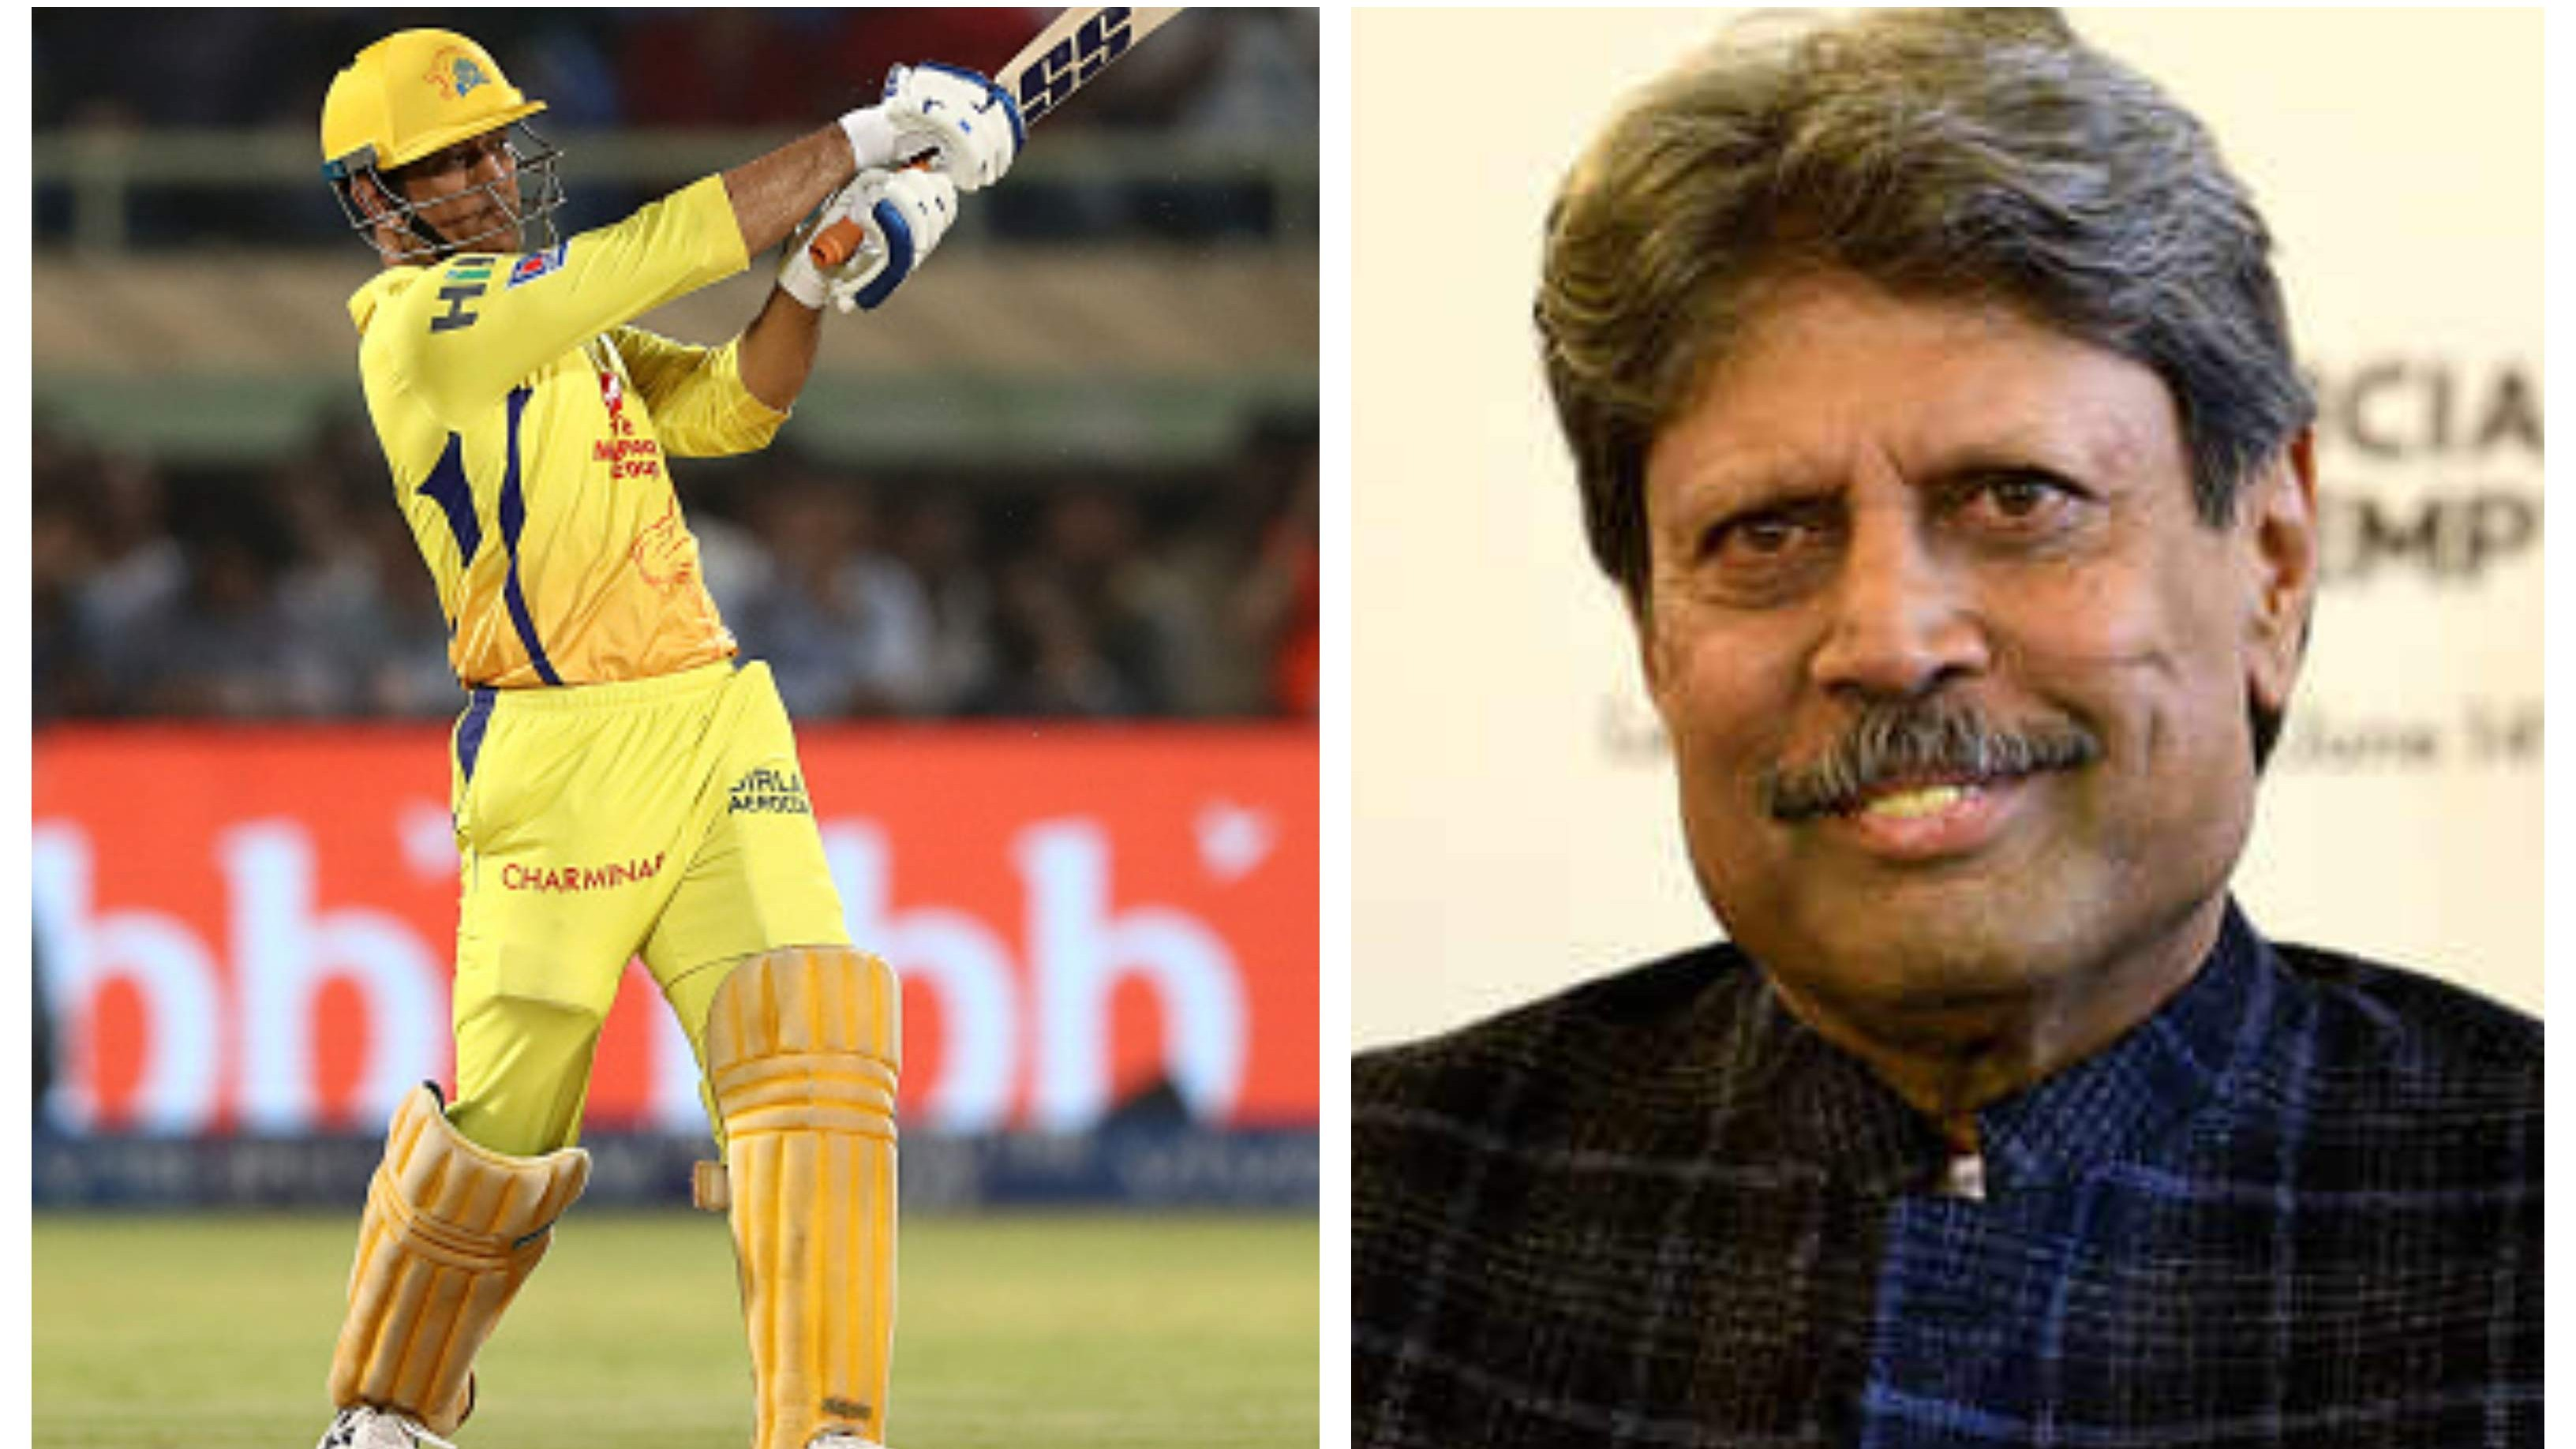 IPL 2020: Kapil Dev not excited about MS Dhoni's return to action during the IPL